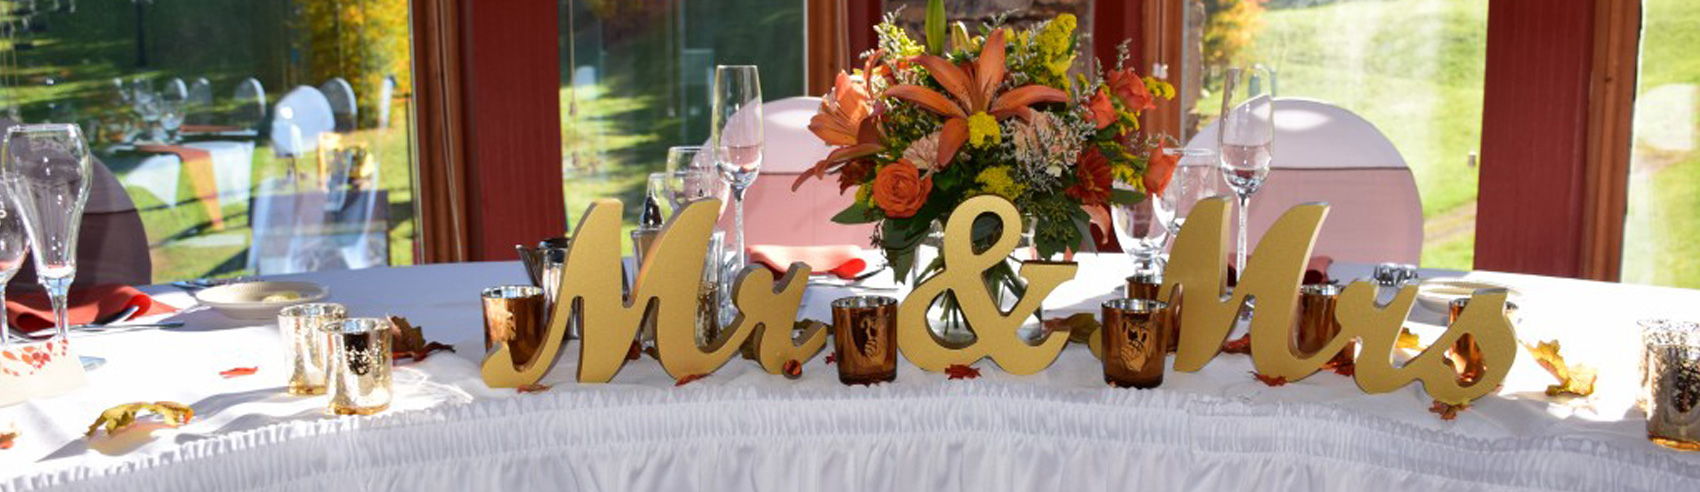 Wedding-HV-Banner